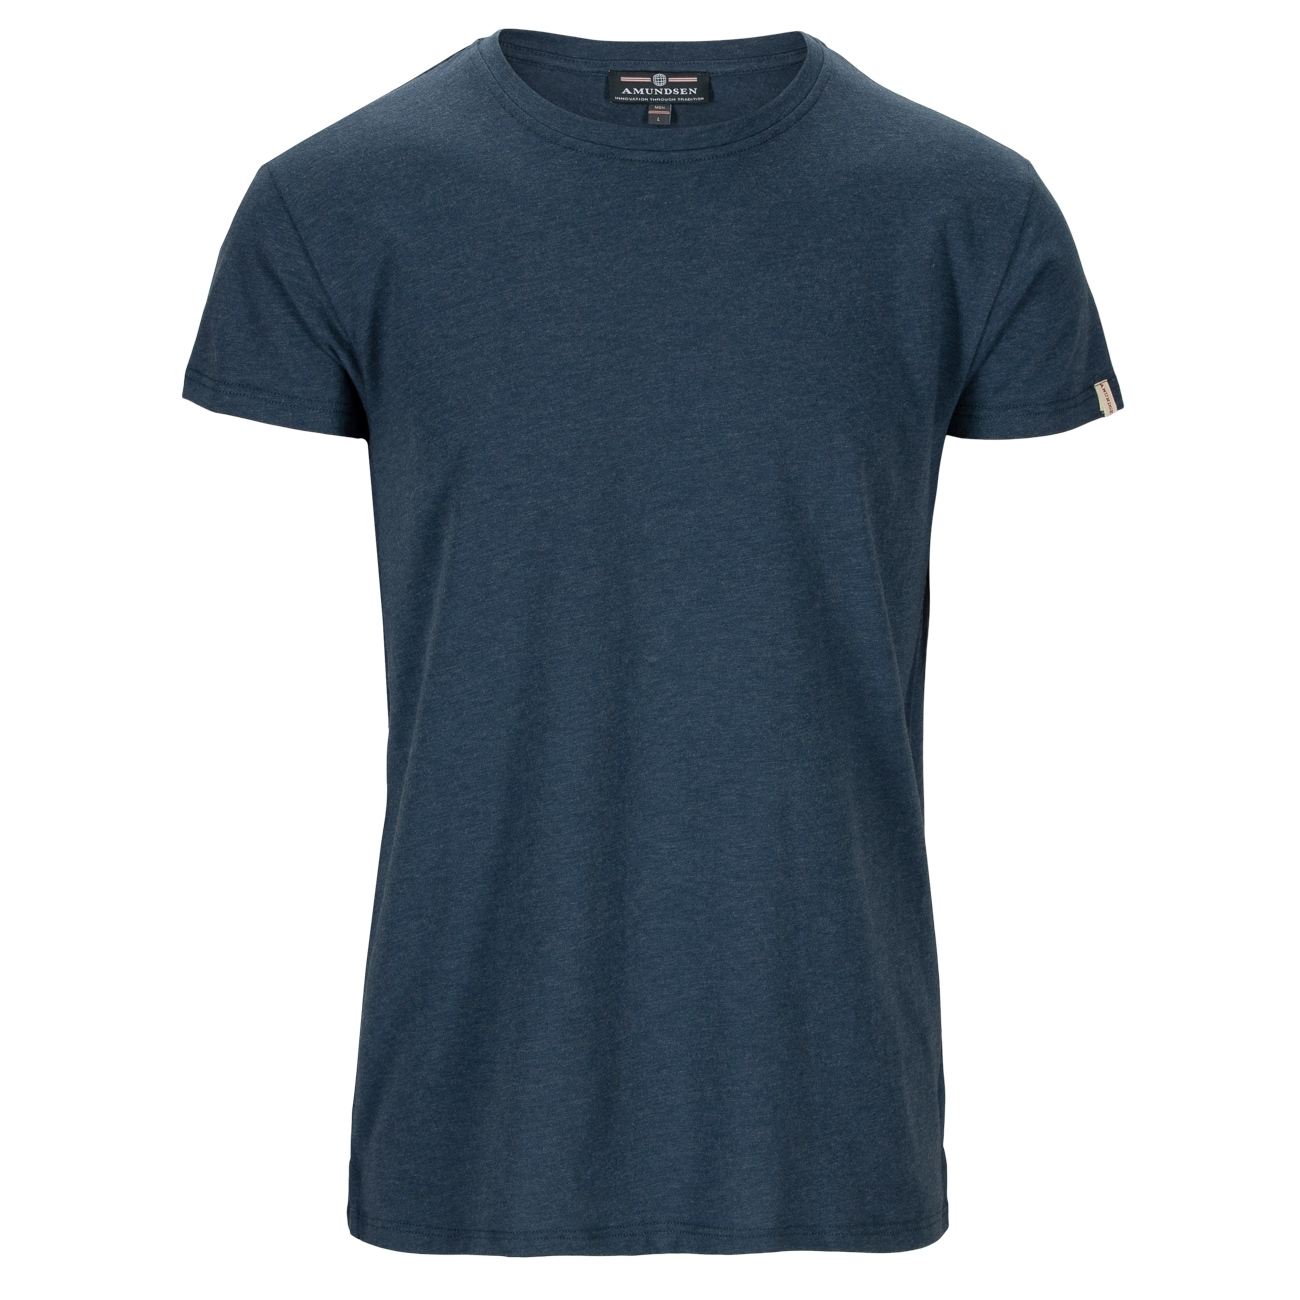 Amundsen Sports Summer Wool Tee, M`s